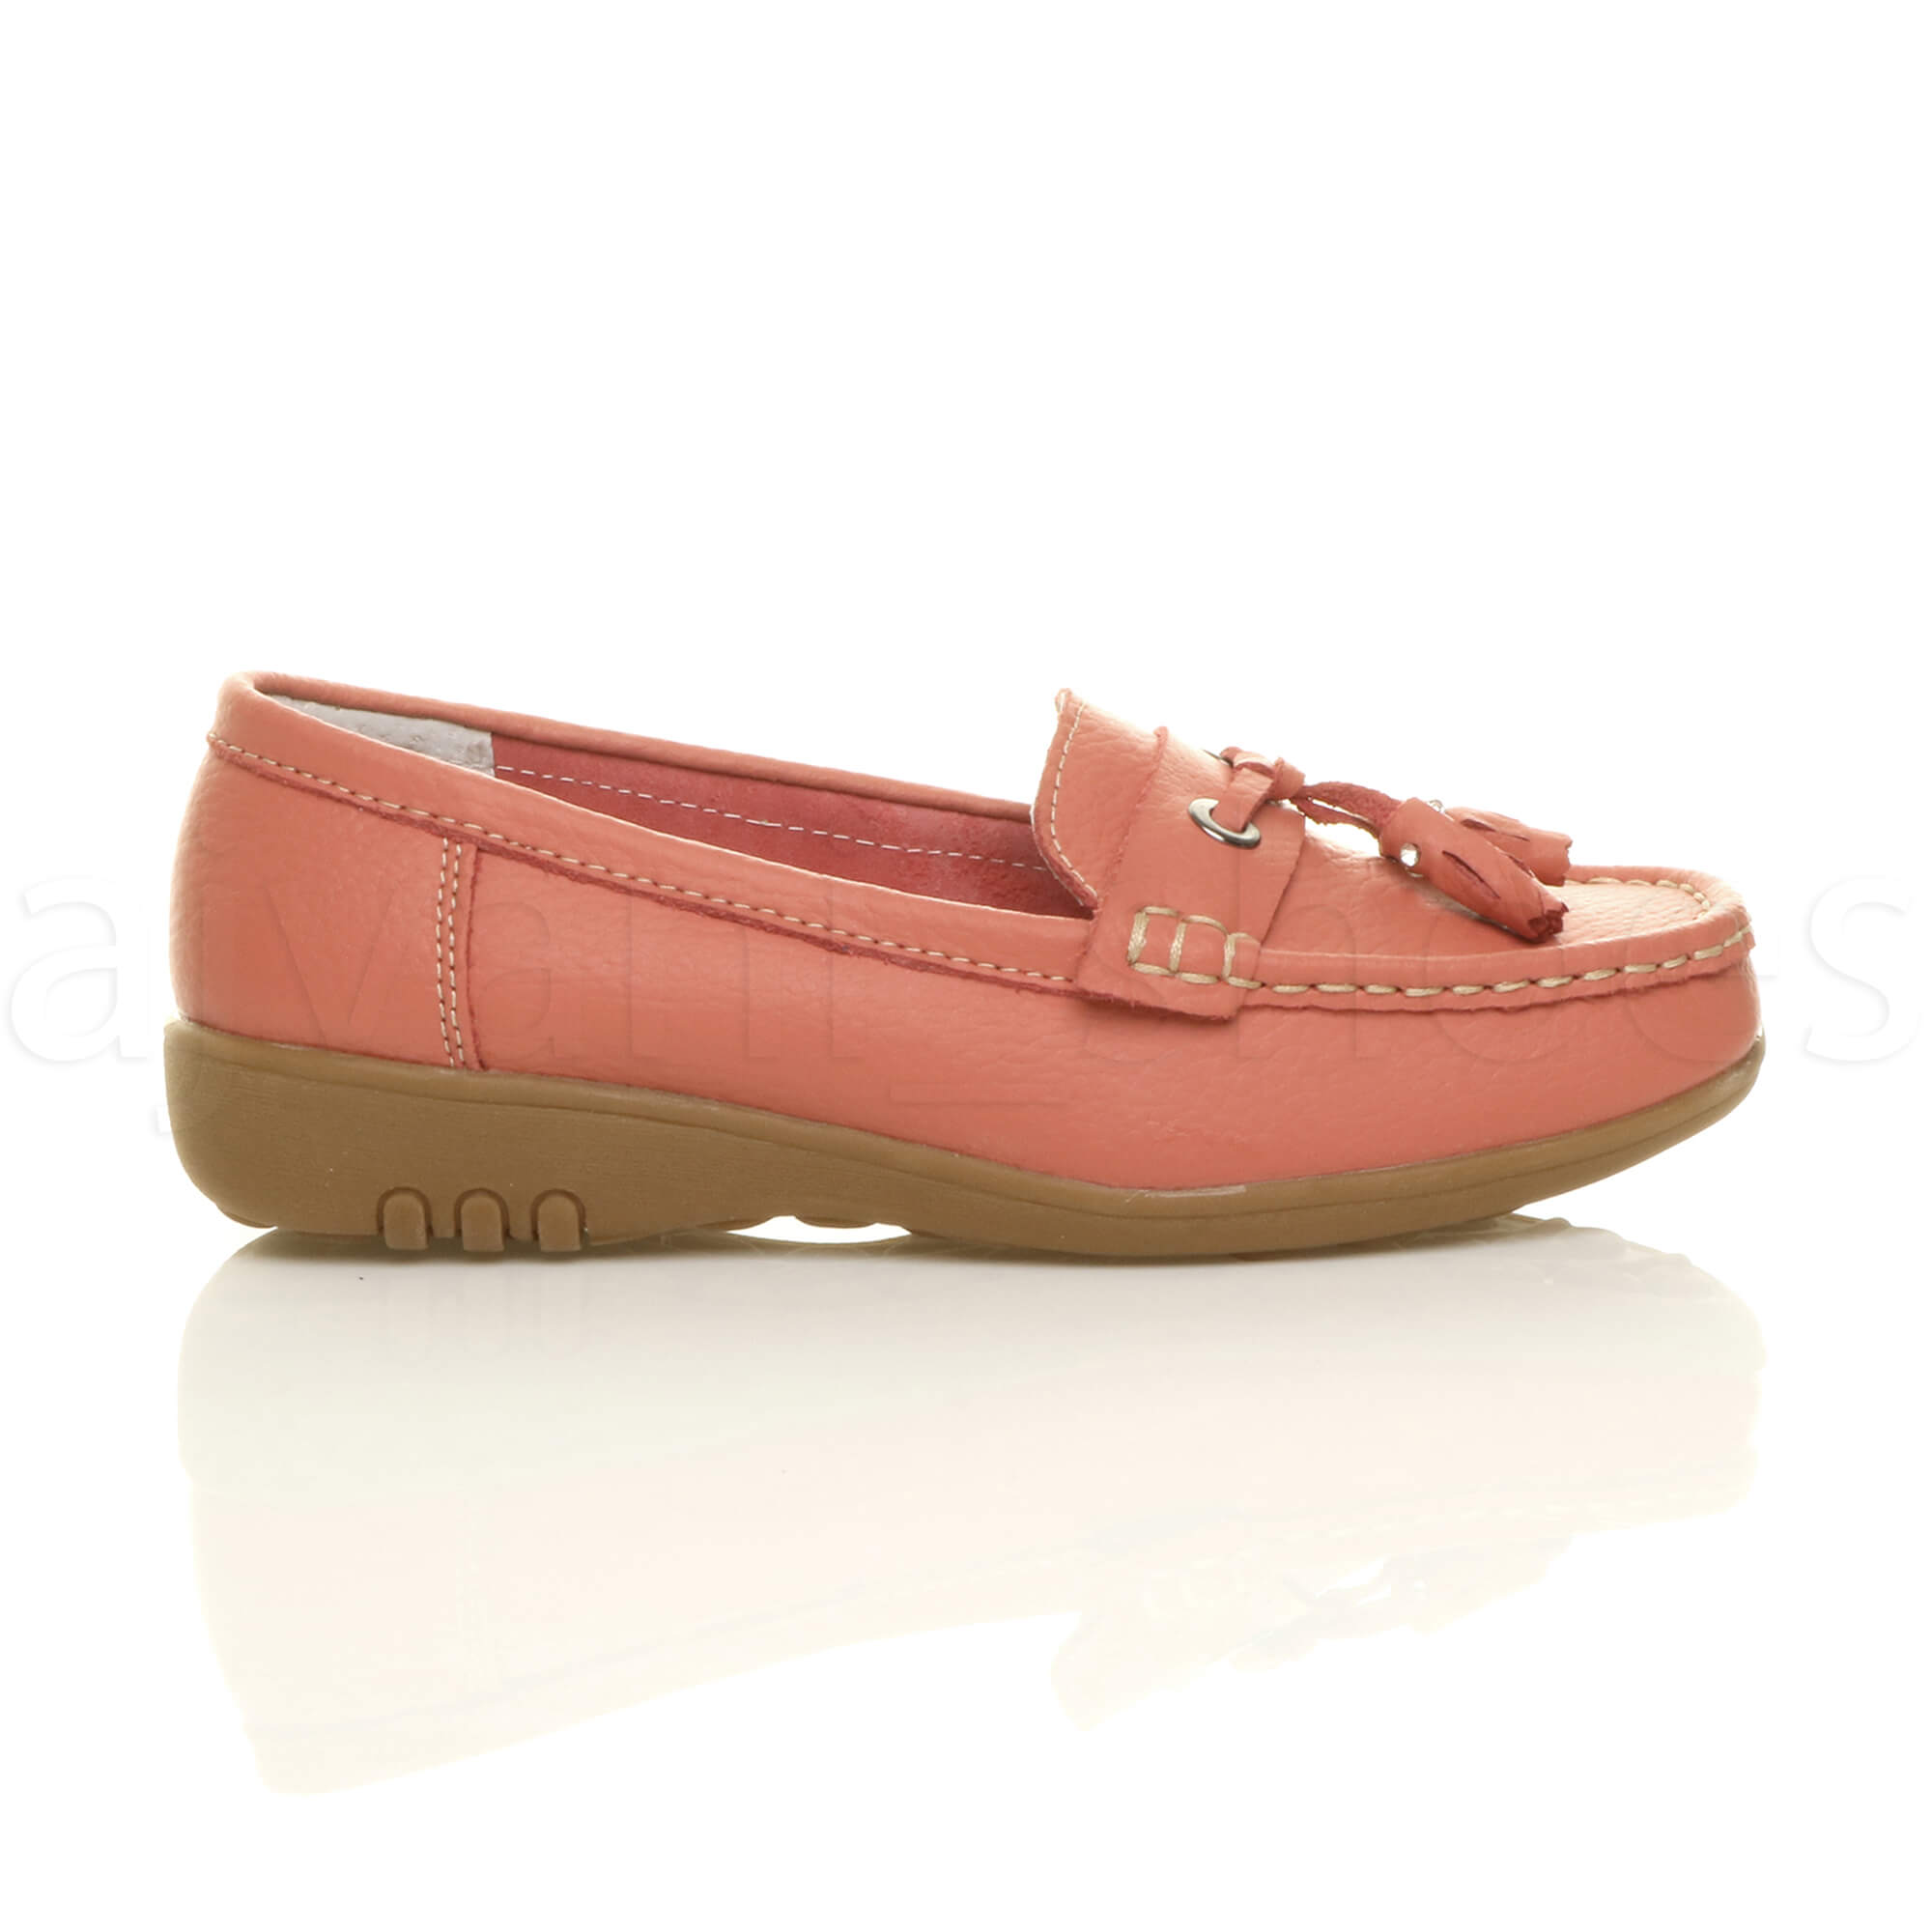 WOMENS-LADIES-LOW-HEEL-WEDGE-LEATHER-TASSEL-LOAFERS-COMFORT-MOCCASINS-SHOES-SIZE thumbnail 27